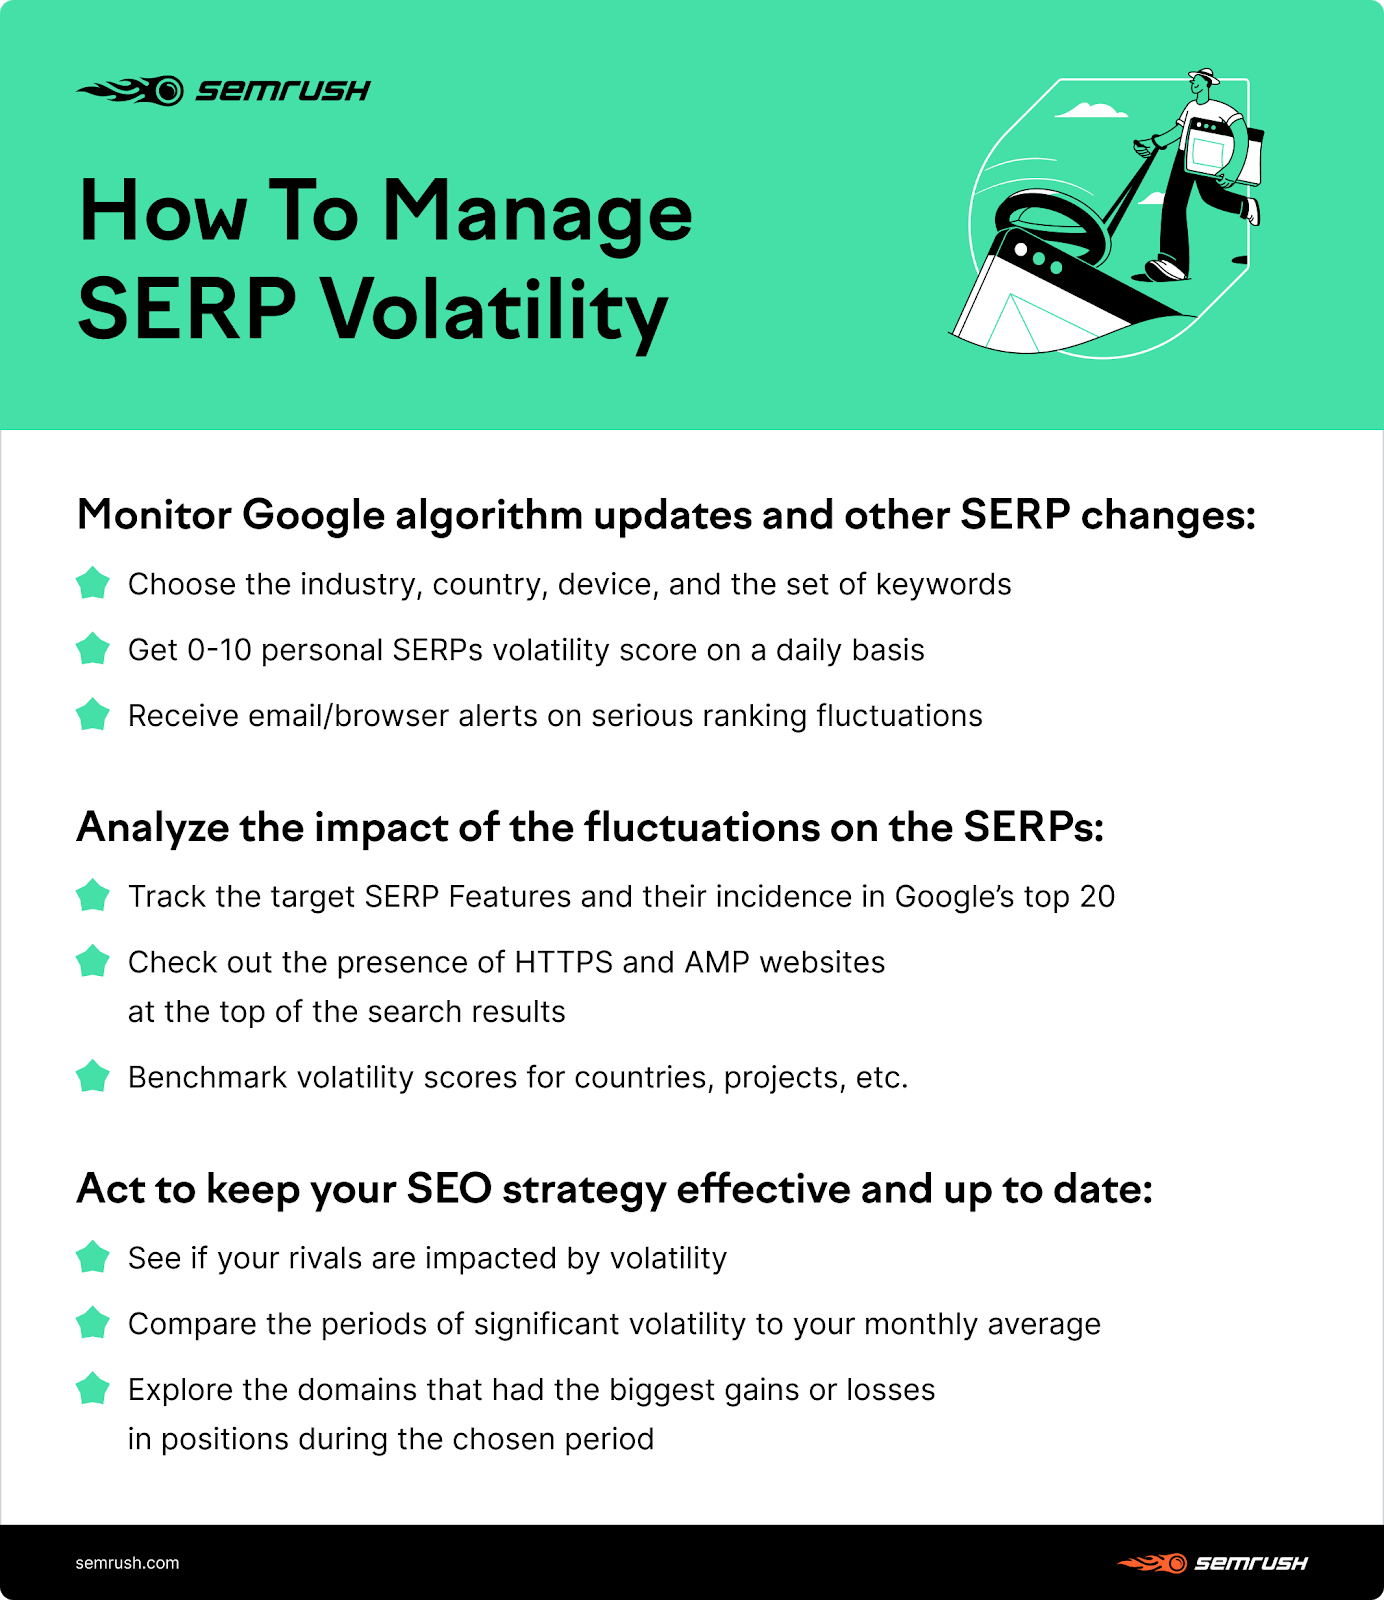 How to Manage SERP Volatility